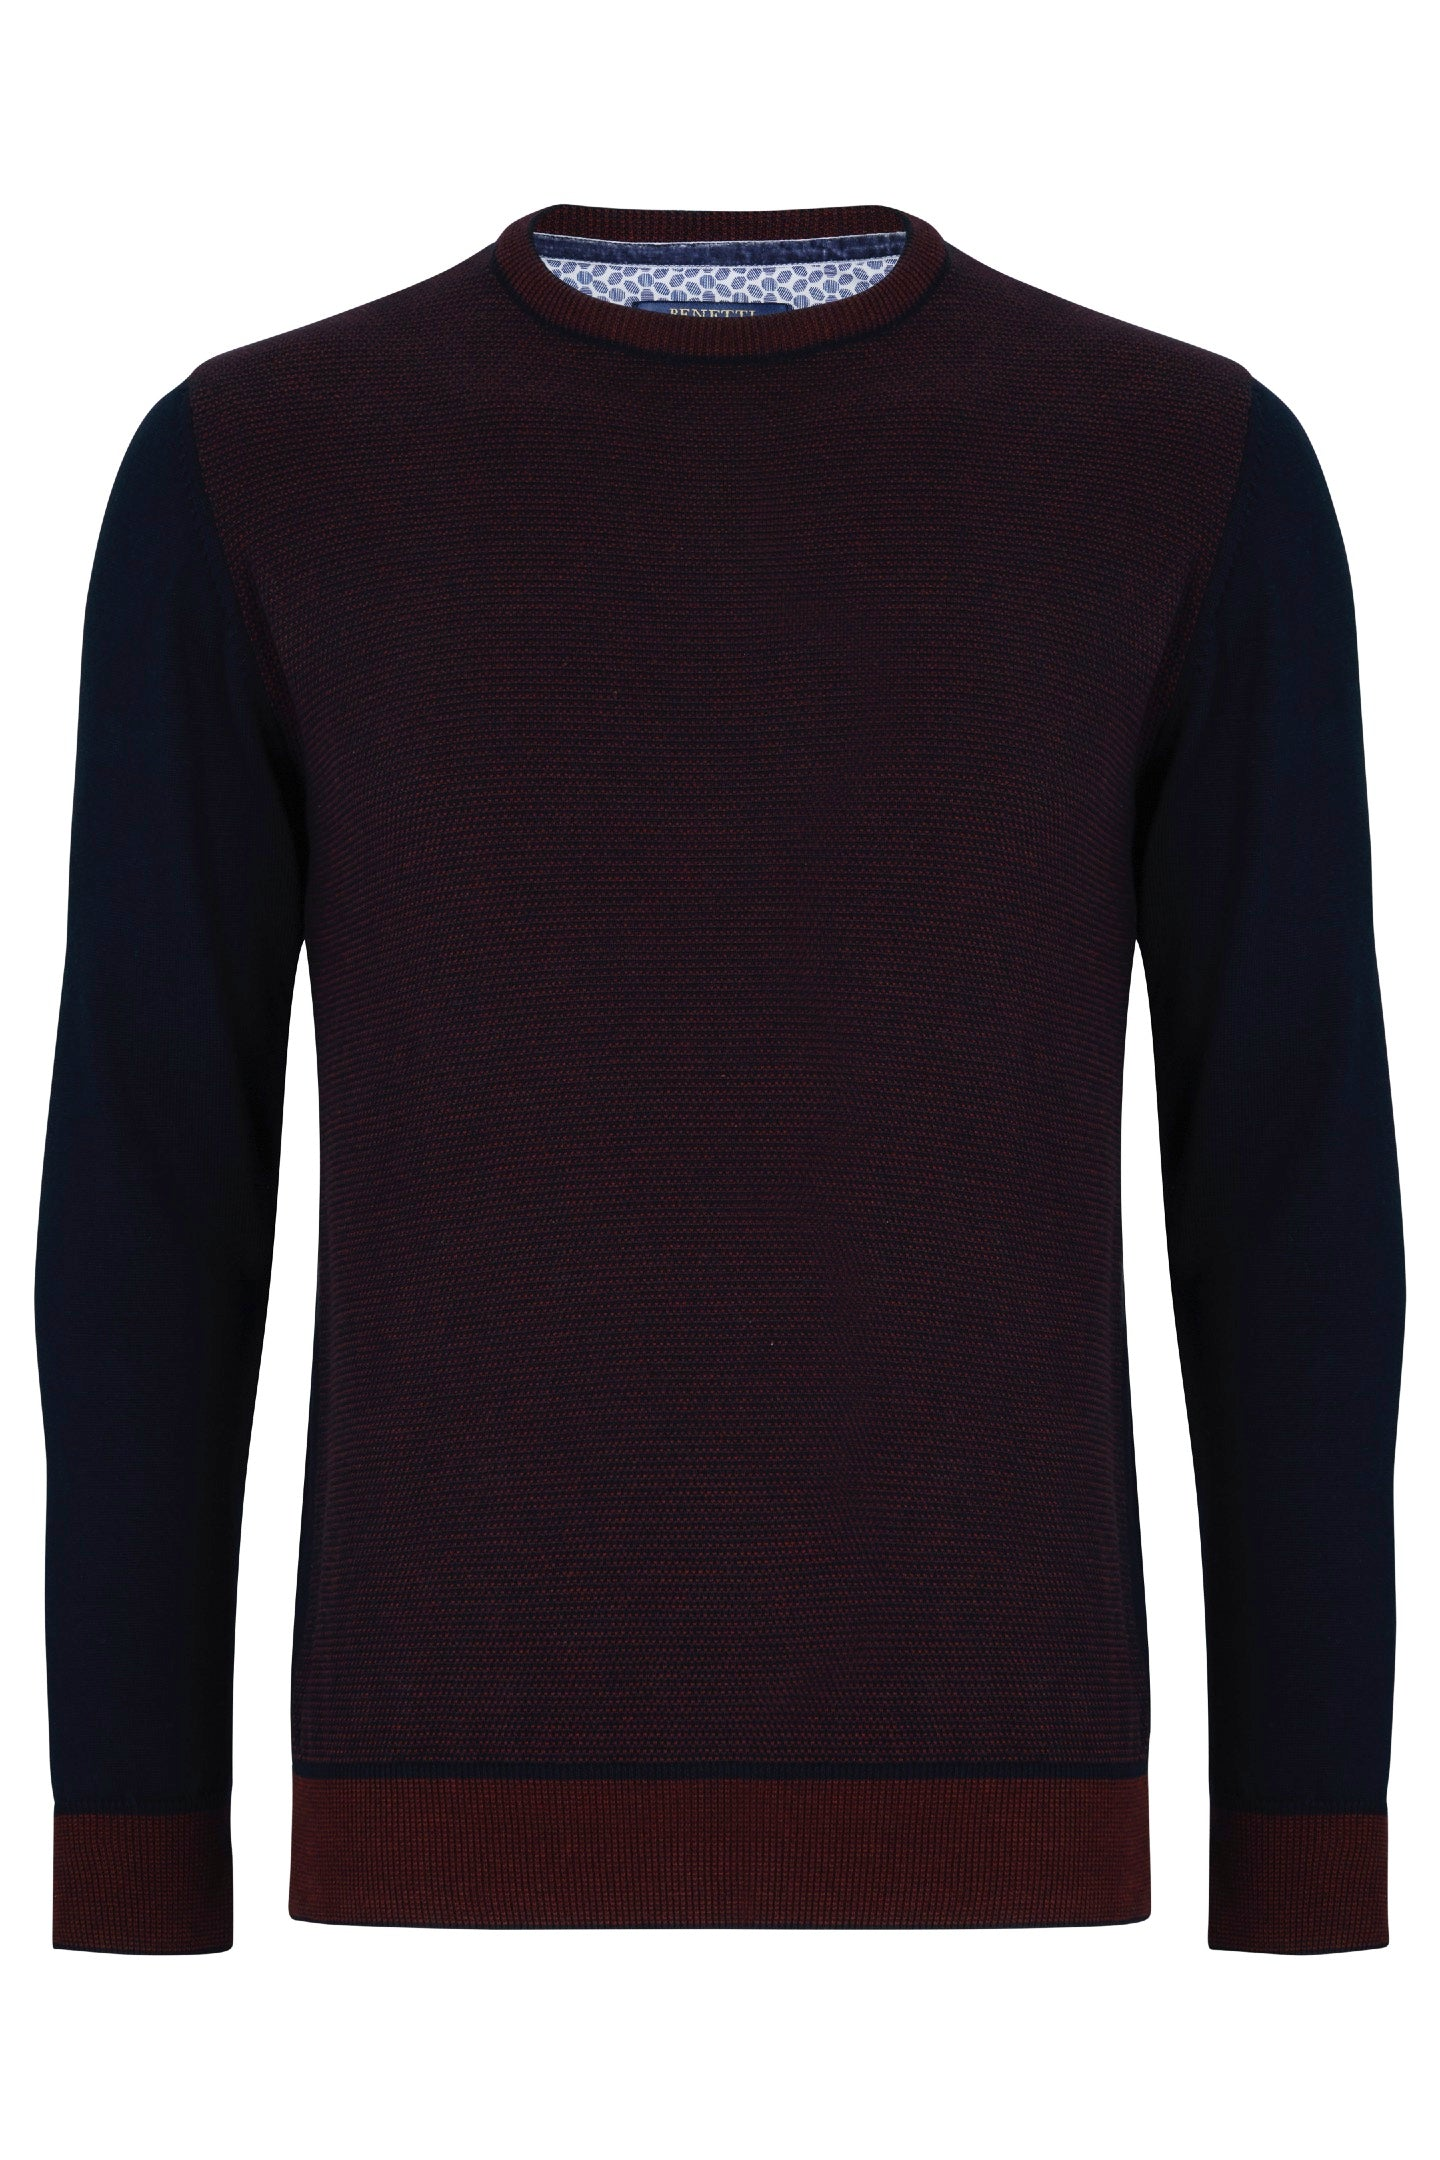 Benetti Trevor Wine Sweater